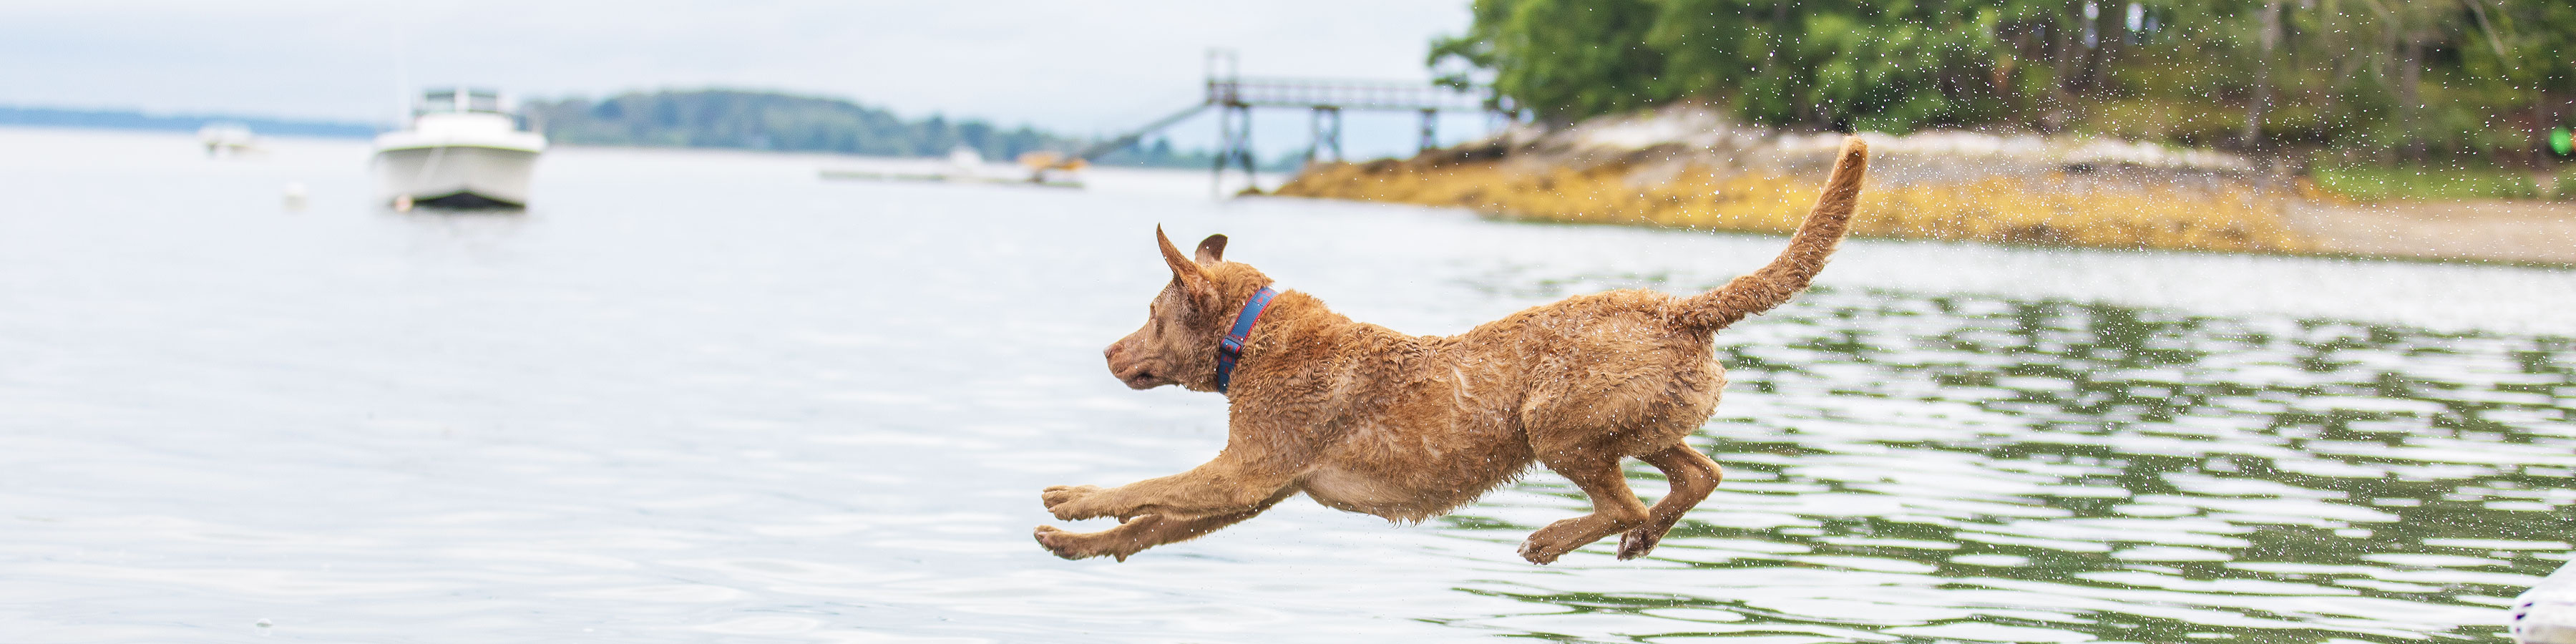 Dog Jumping into Water